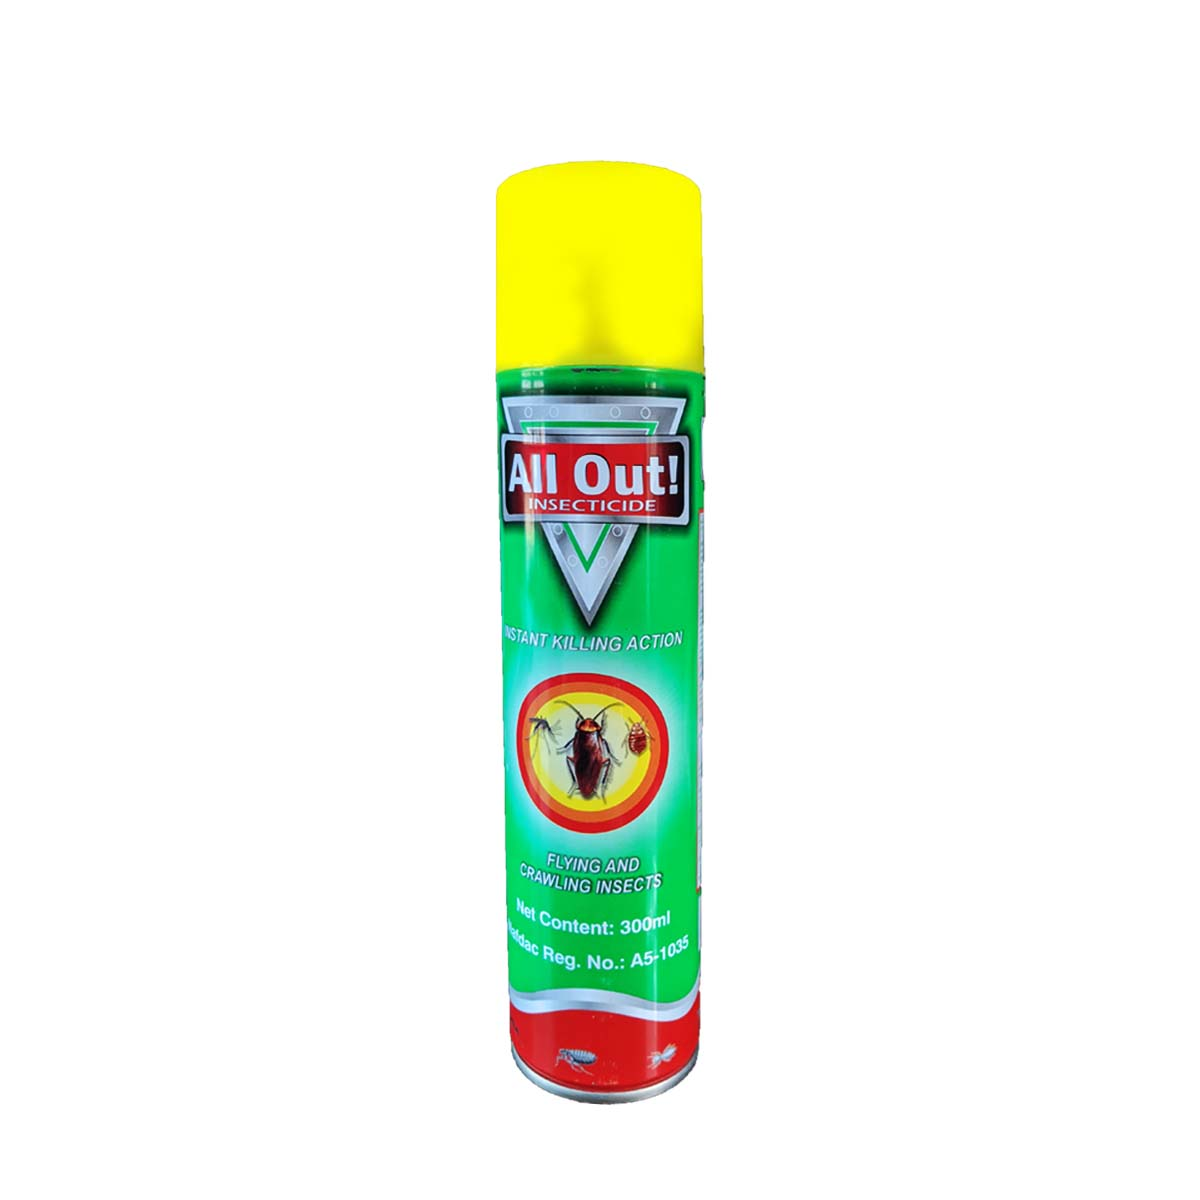 All Out! Insecticide 300ml